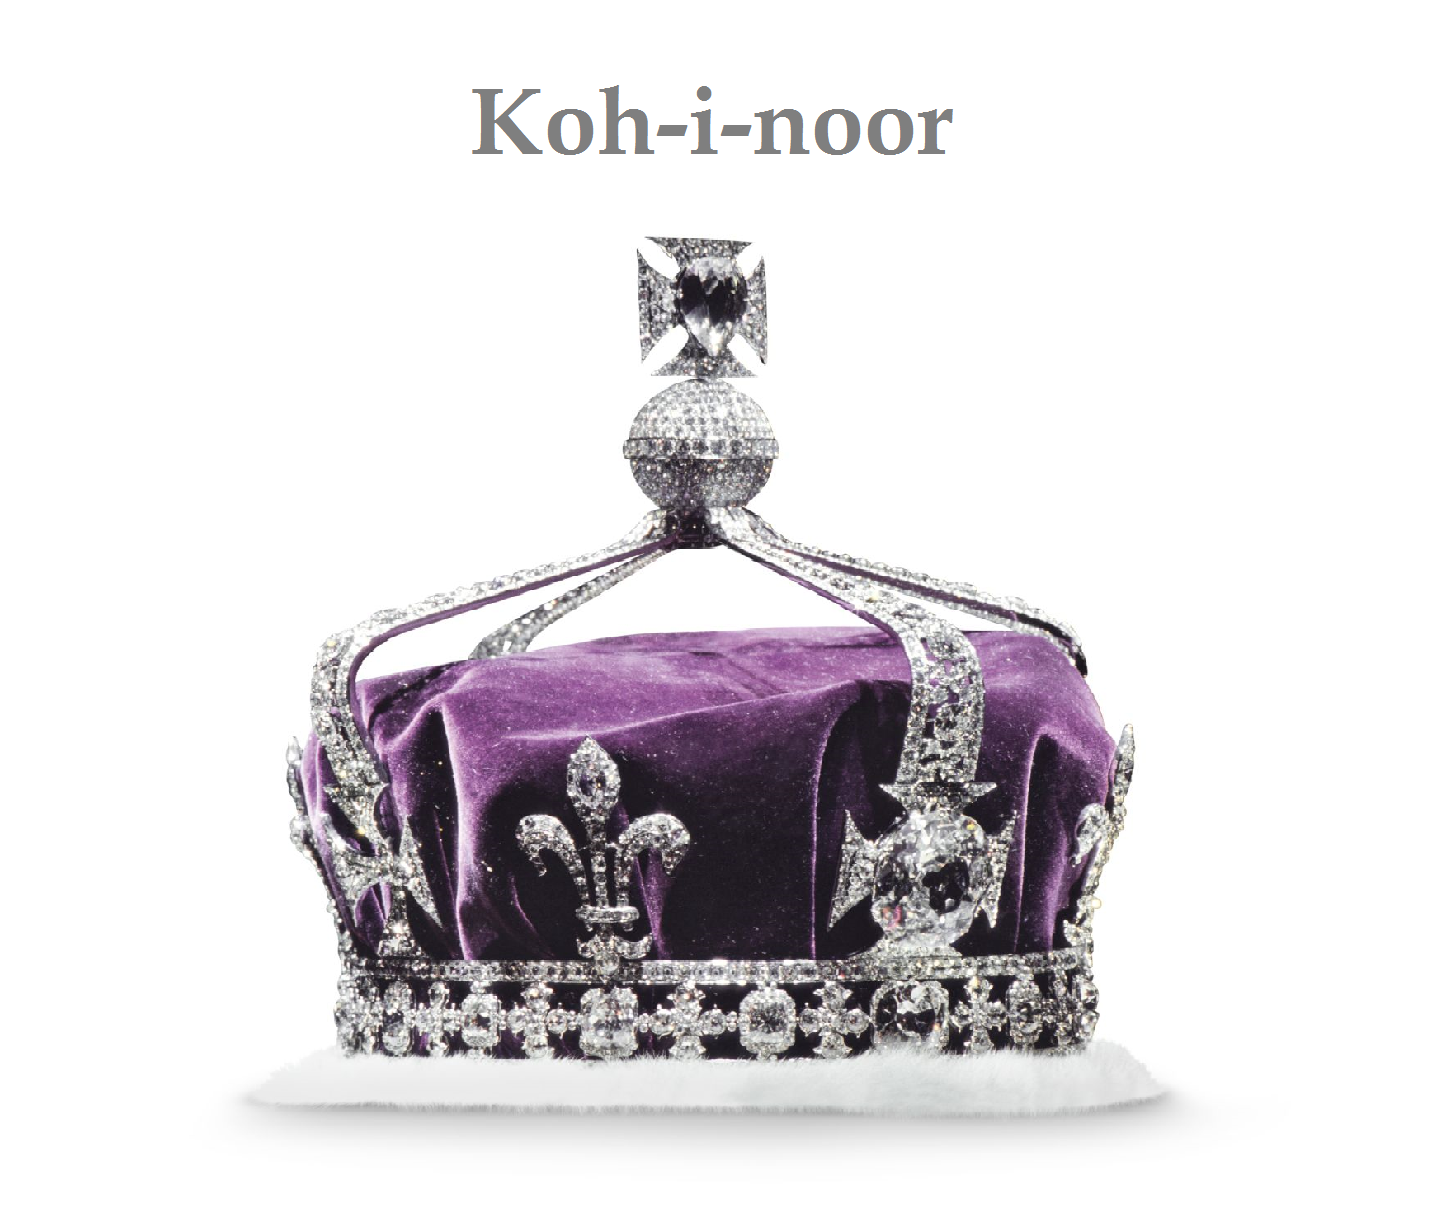 Koh-i-noor Diamond